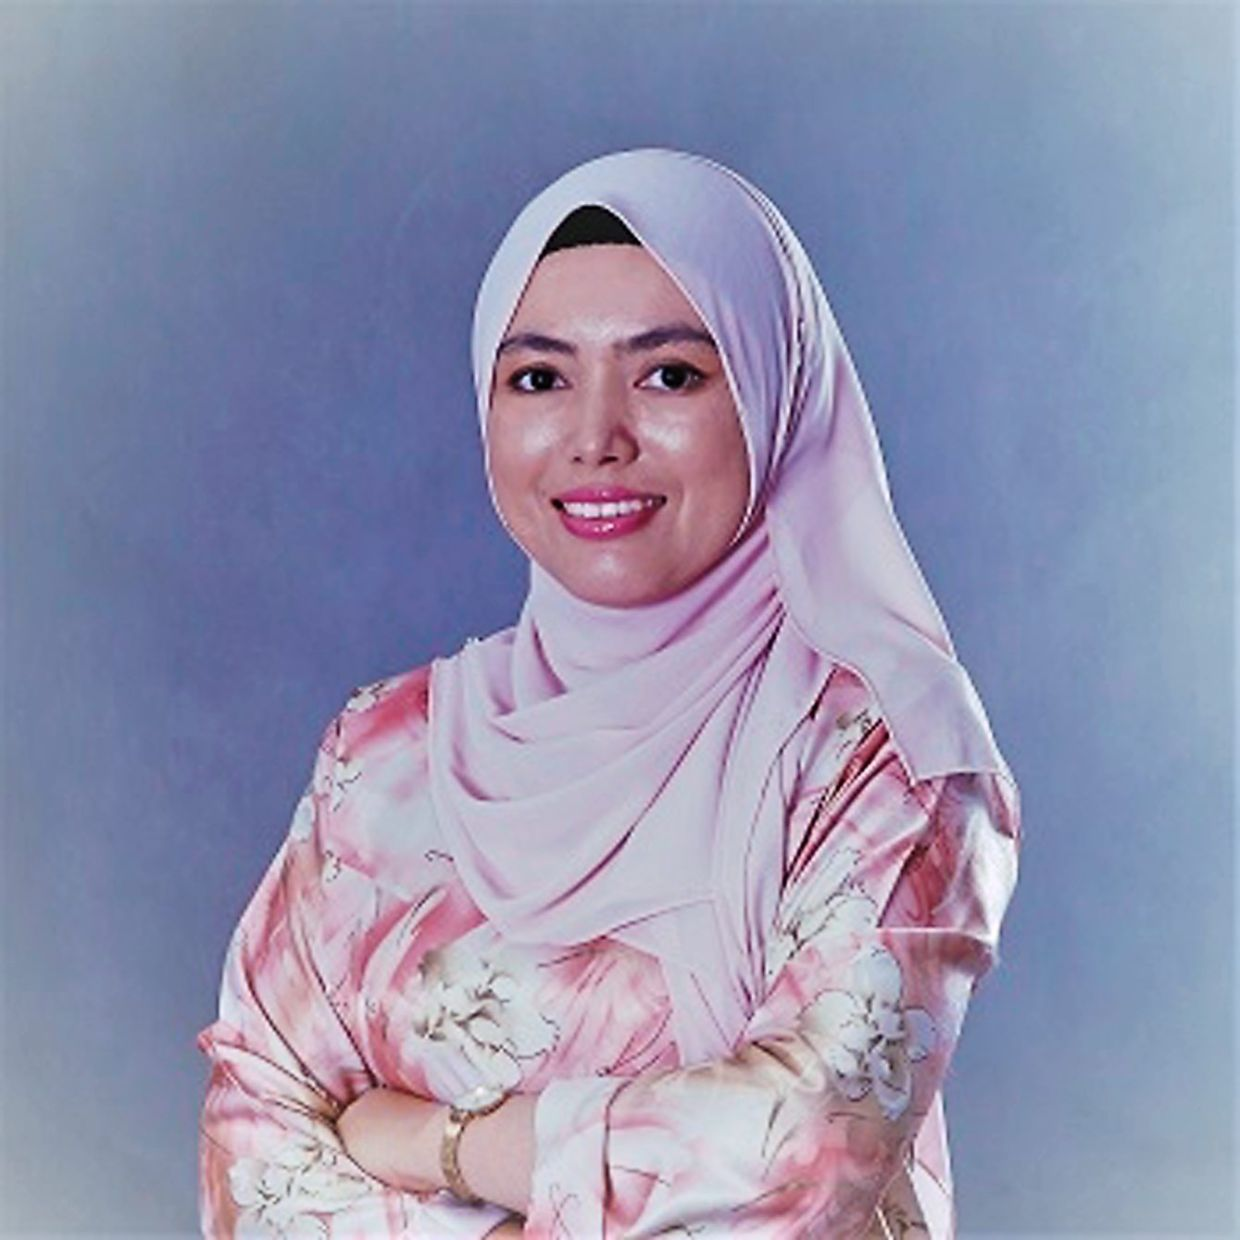 Dr Fatimah: It is important to inform the public that the sooner we vaccinate and establish herd immunity, the sooner we can get back to our day-to-day lives.